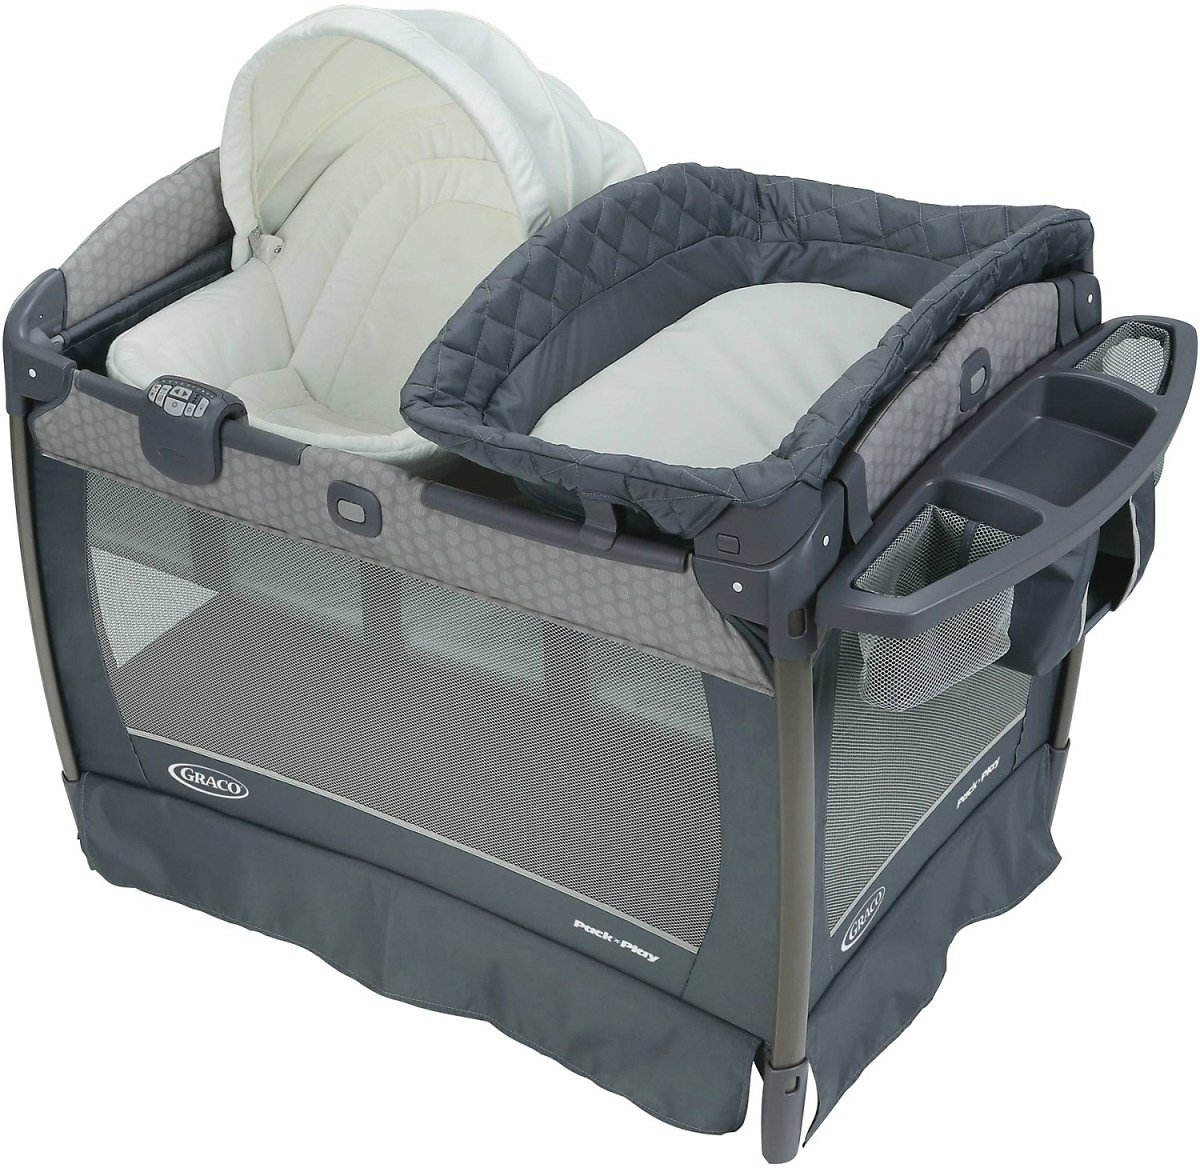 Graco Pack 'n Play Newborn Napper Oasis Playard with Soothe Surround® Technology